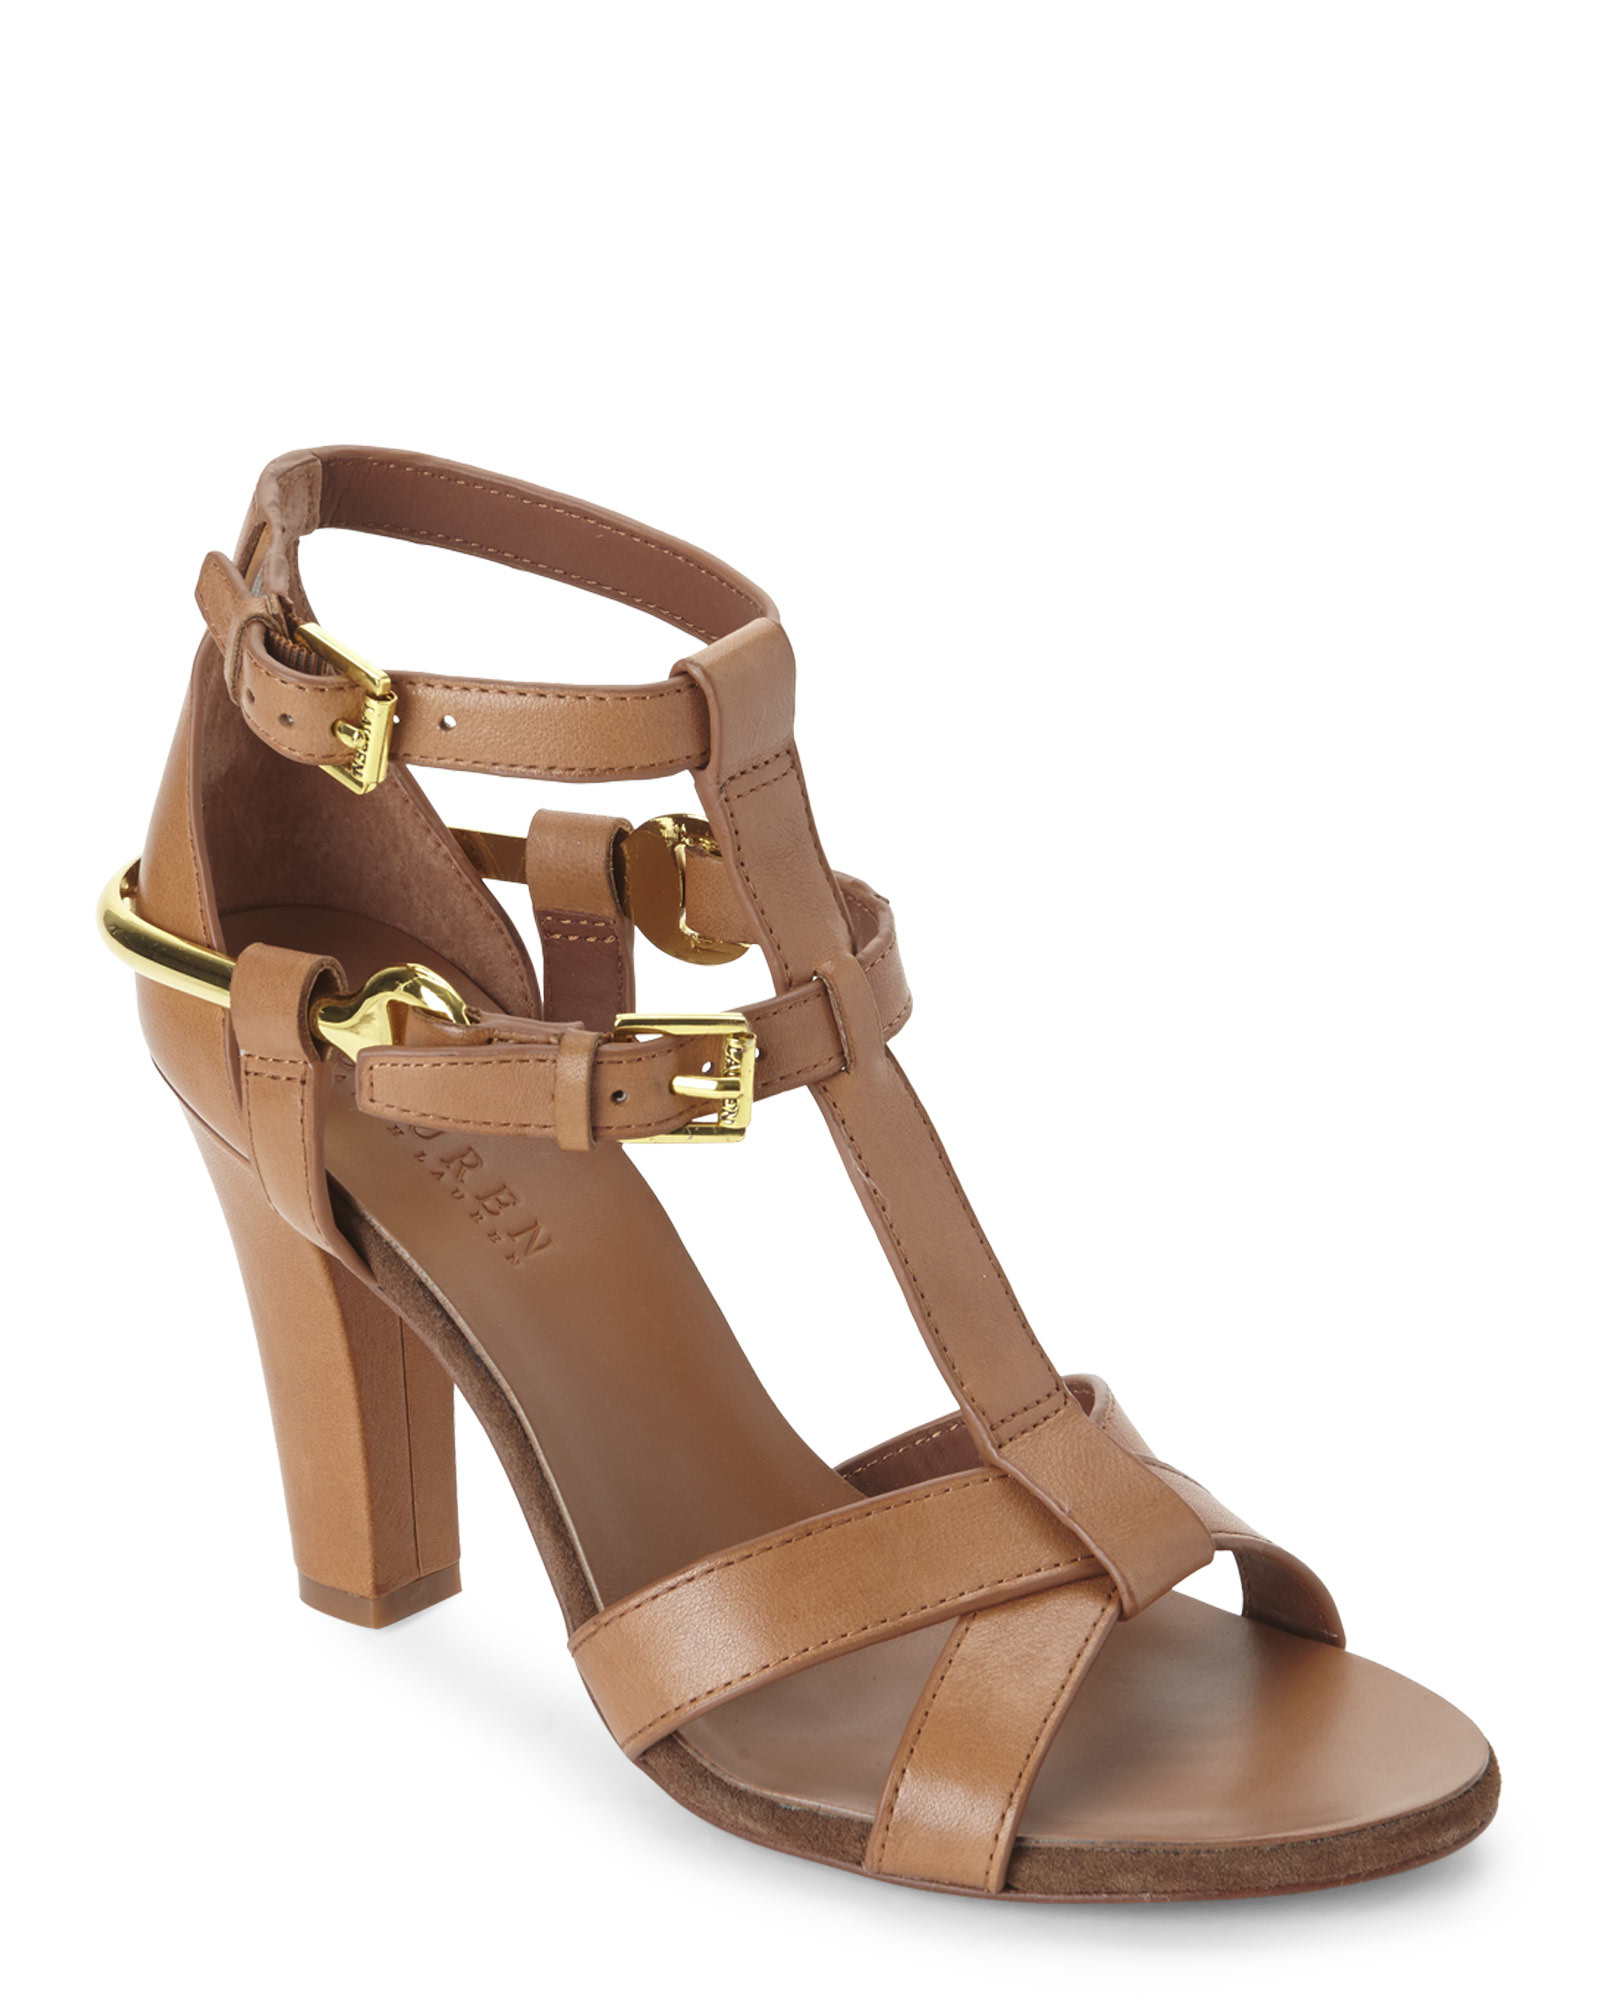 5f350771058875 Lyst - Ralph Lauren Tan Leena Vachetta Leather Sandals in Brown